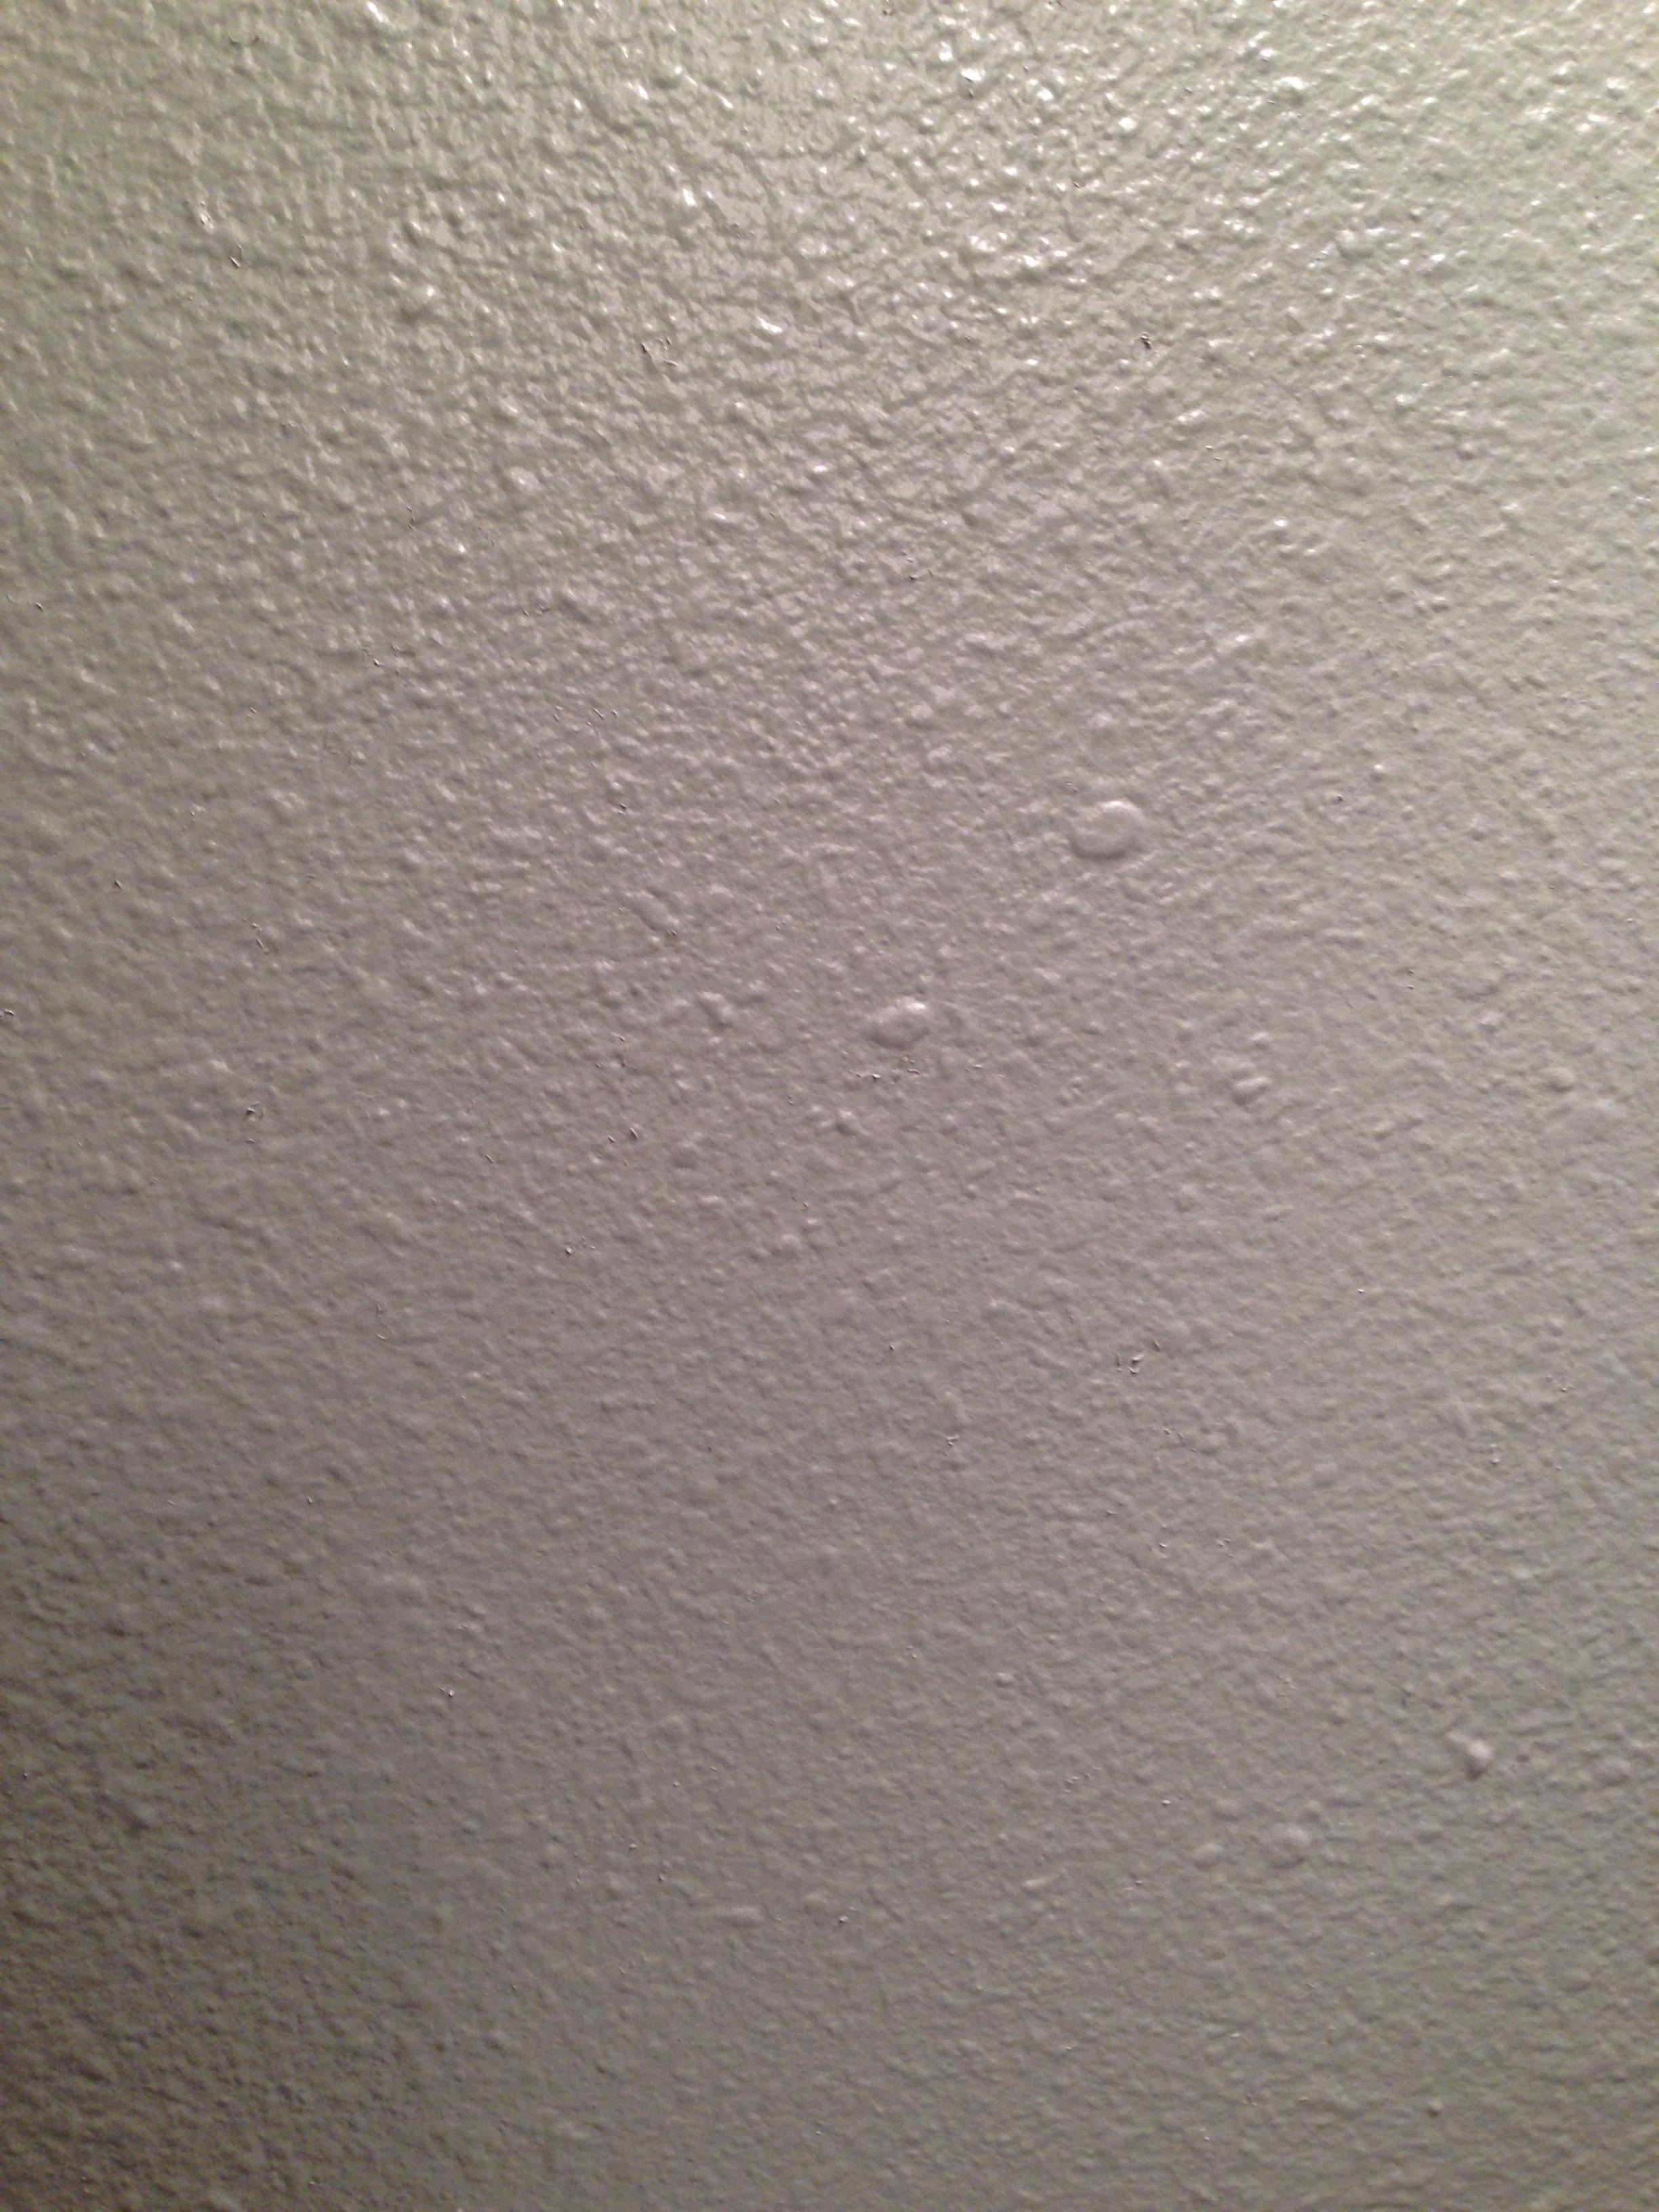 Different Wall Textures Drywall Help Identifying Type Of Texture On Walls Home